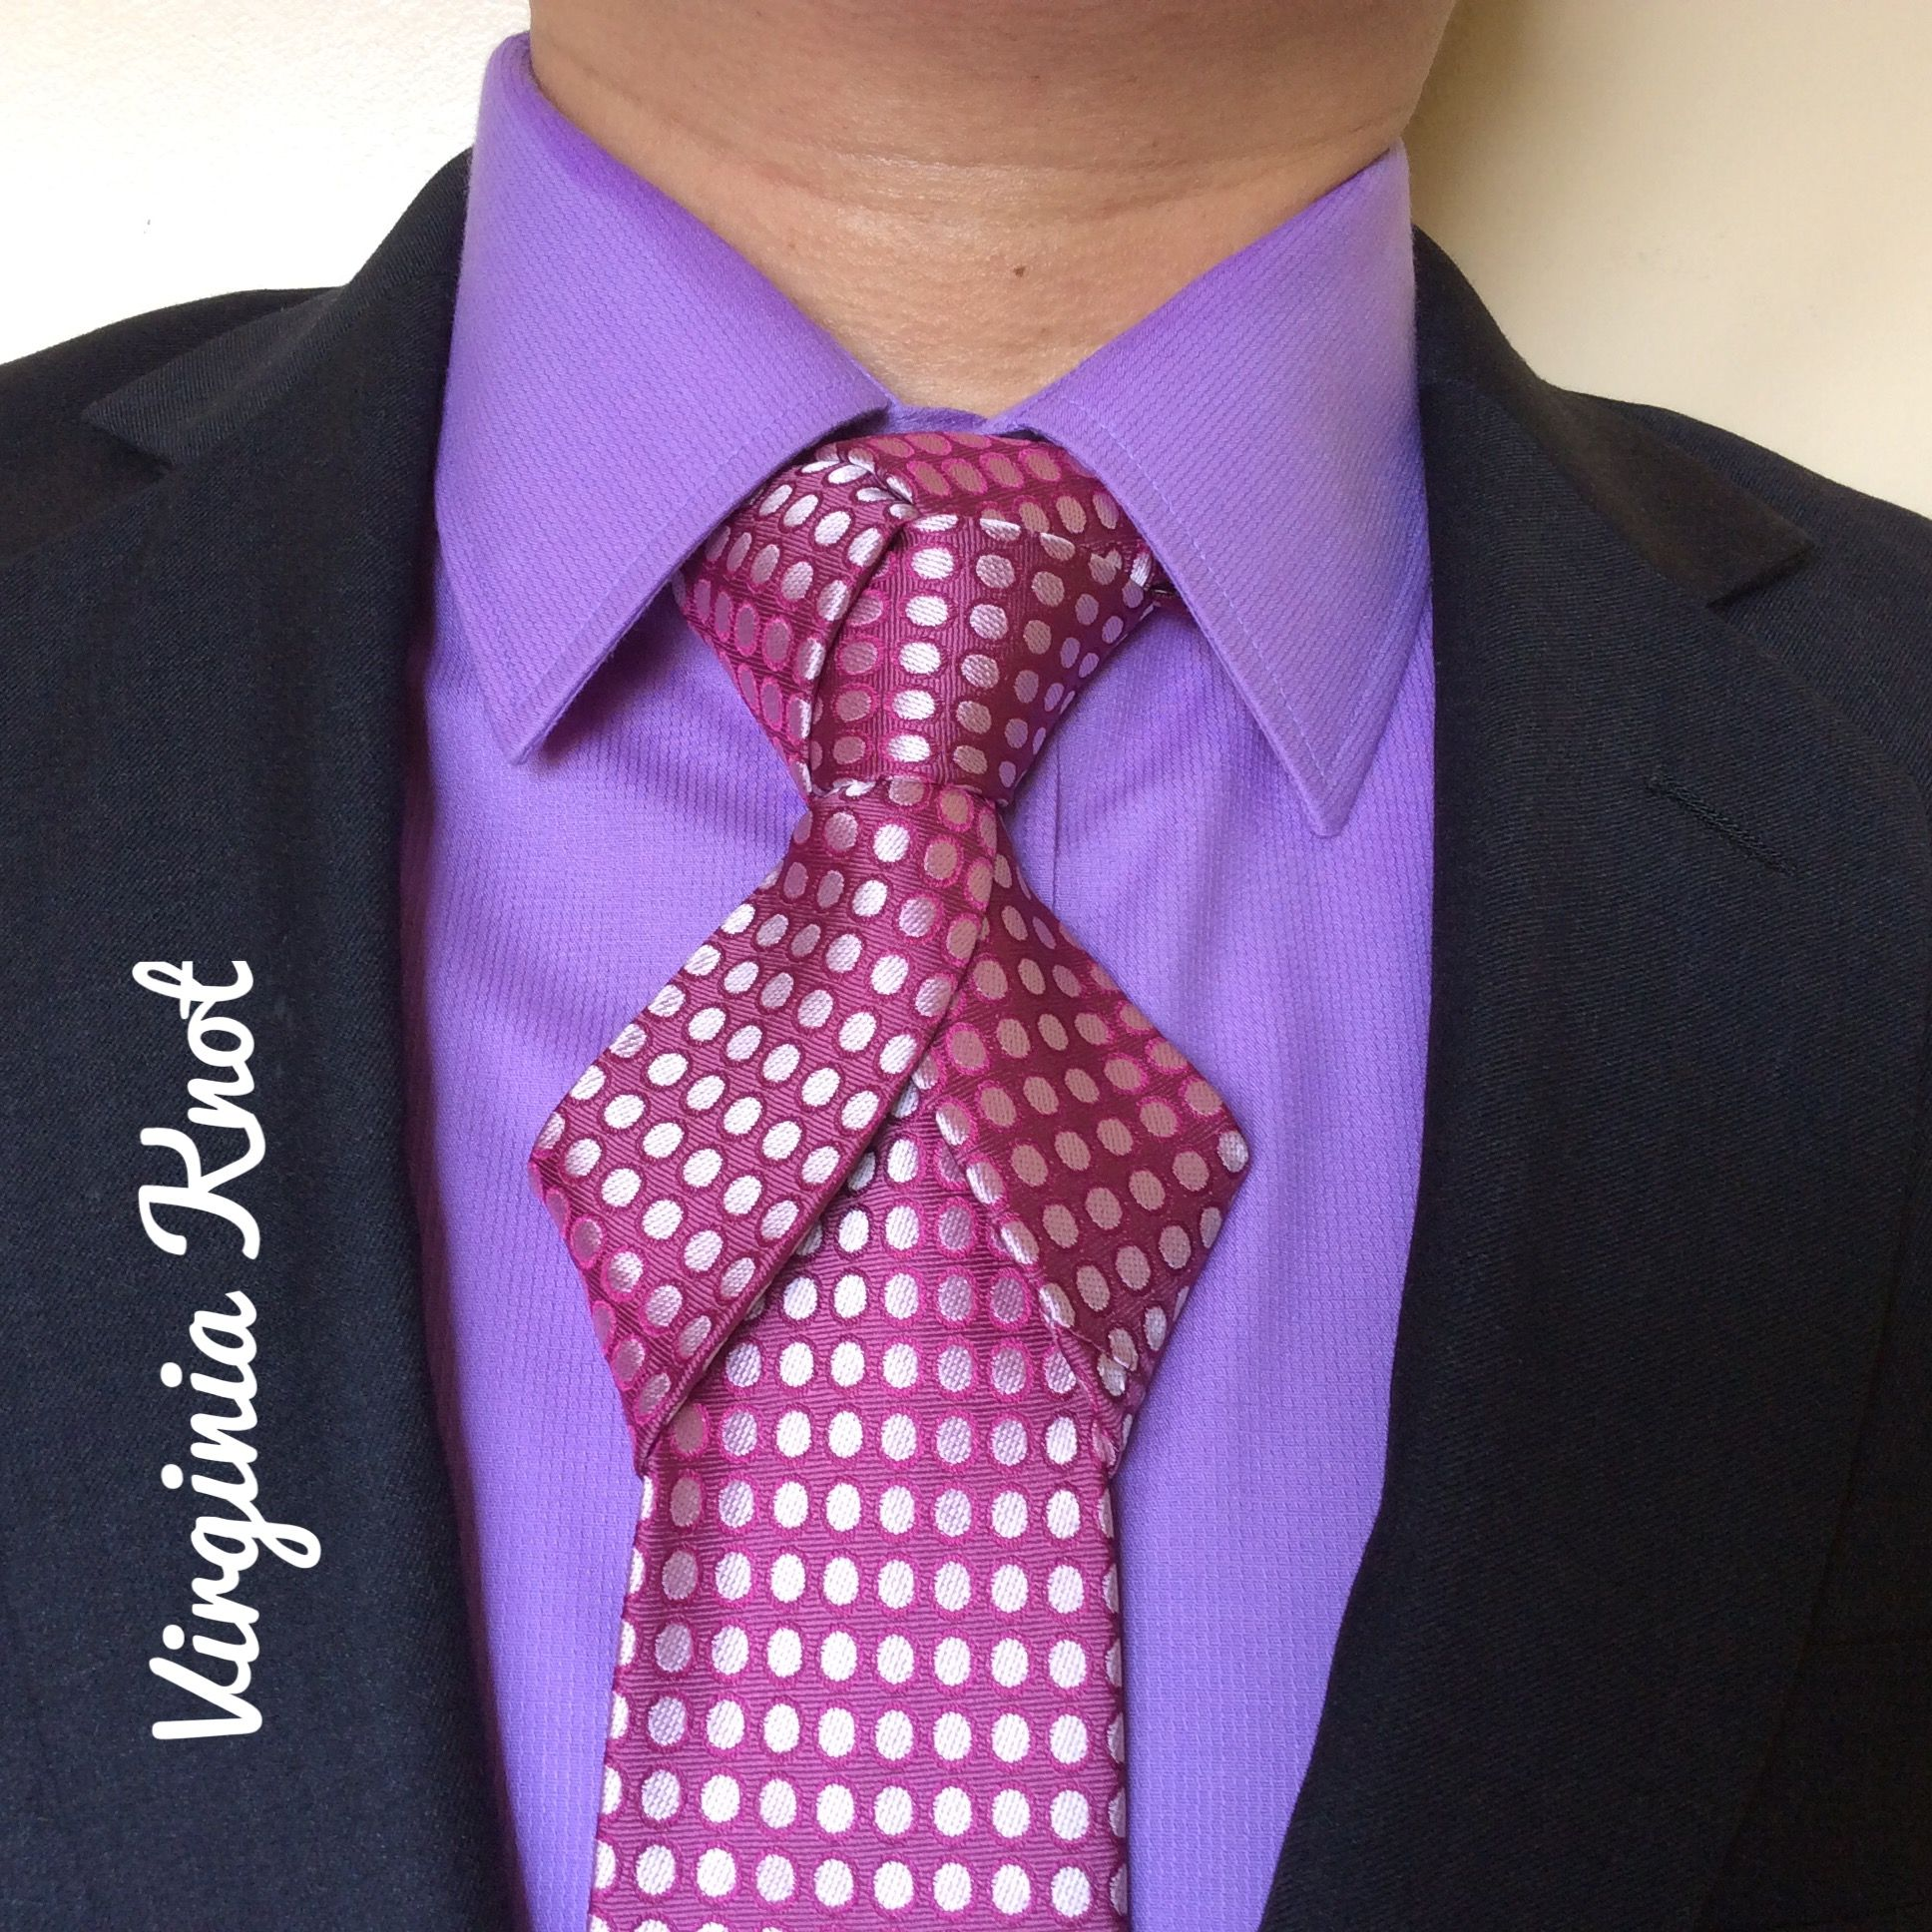 Tie Styles: Virginia Knot Created By Noel Junio. It Is A Combination